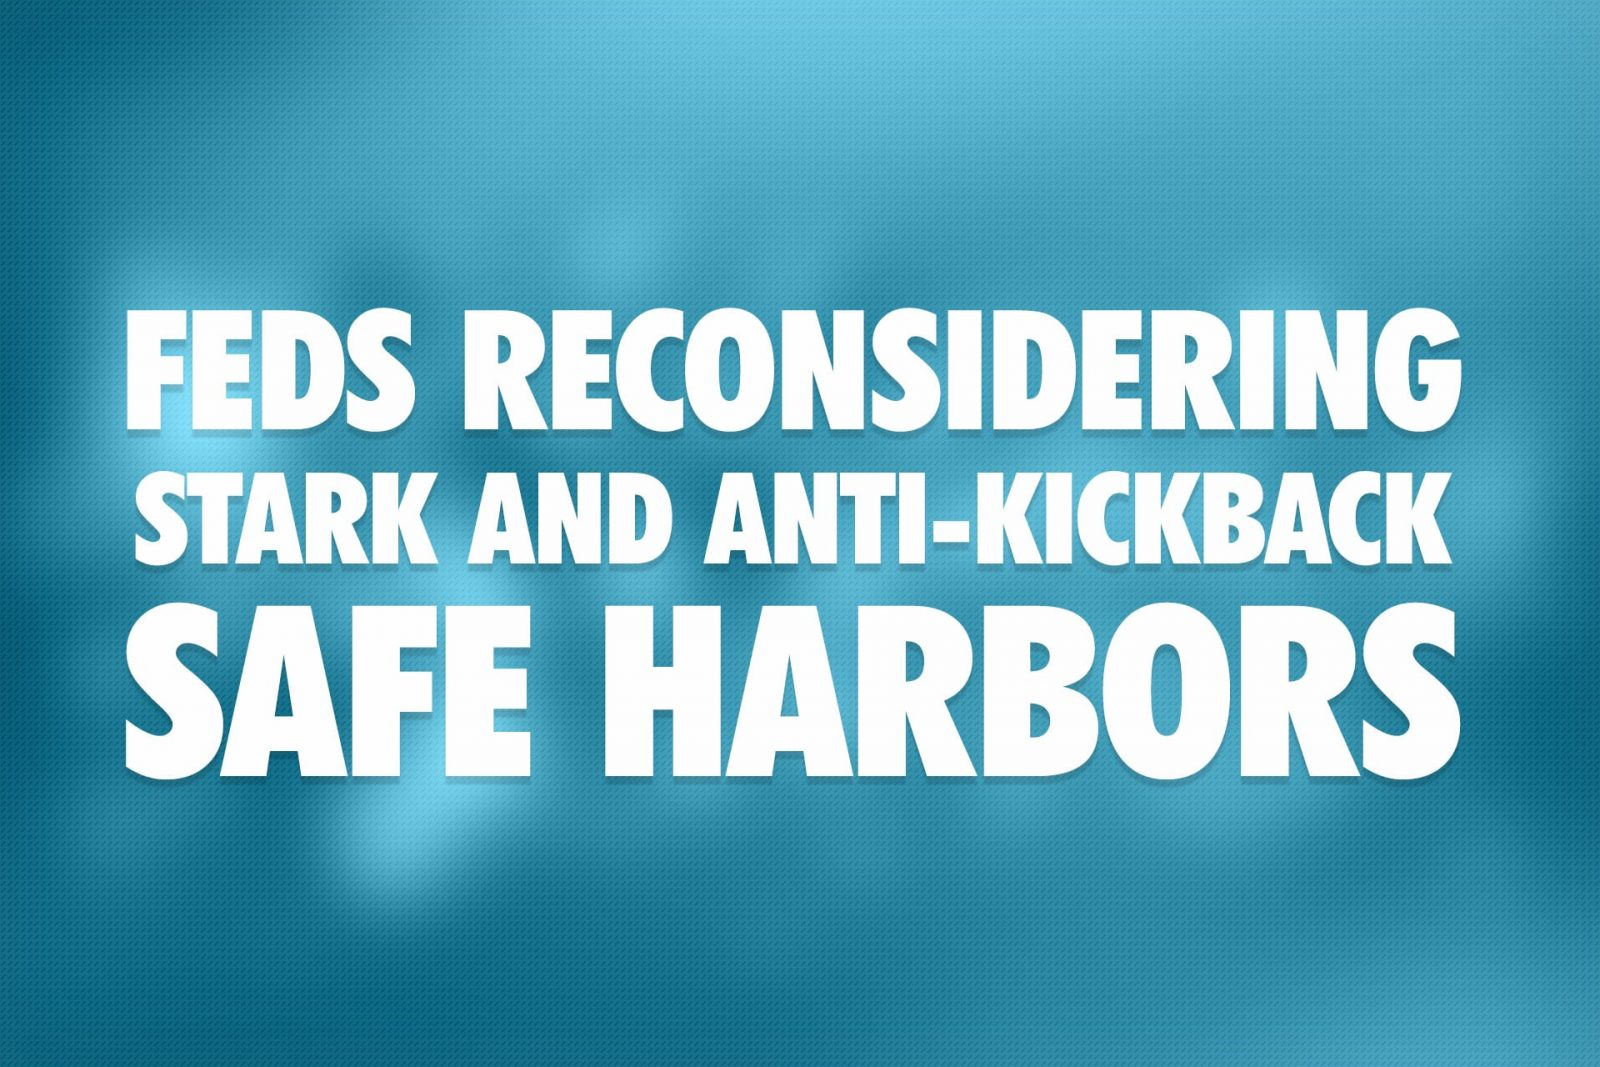 Feds Reconsidering Stark and Anti-Kickback Safe Harbors